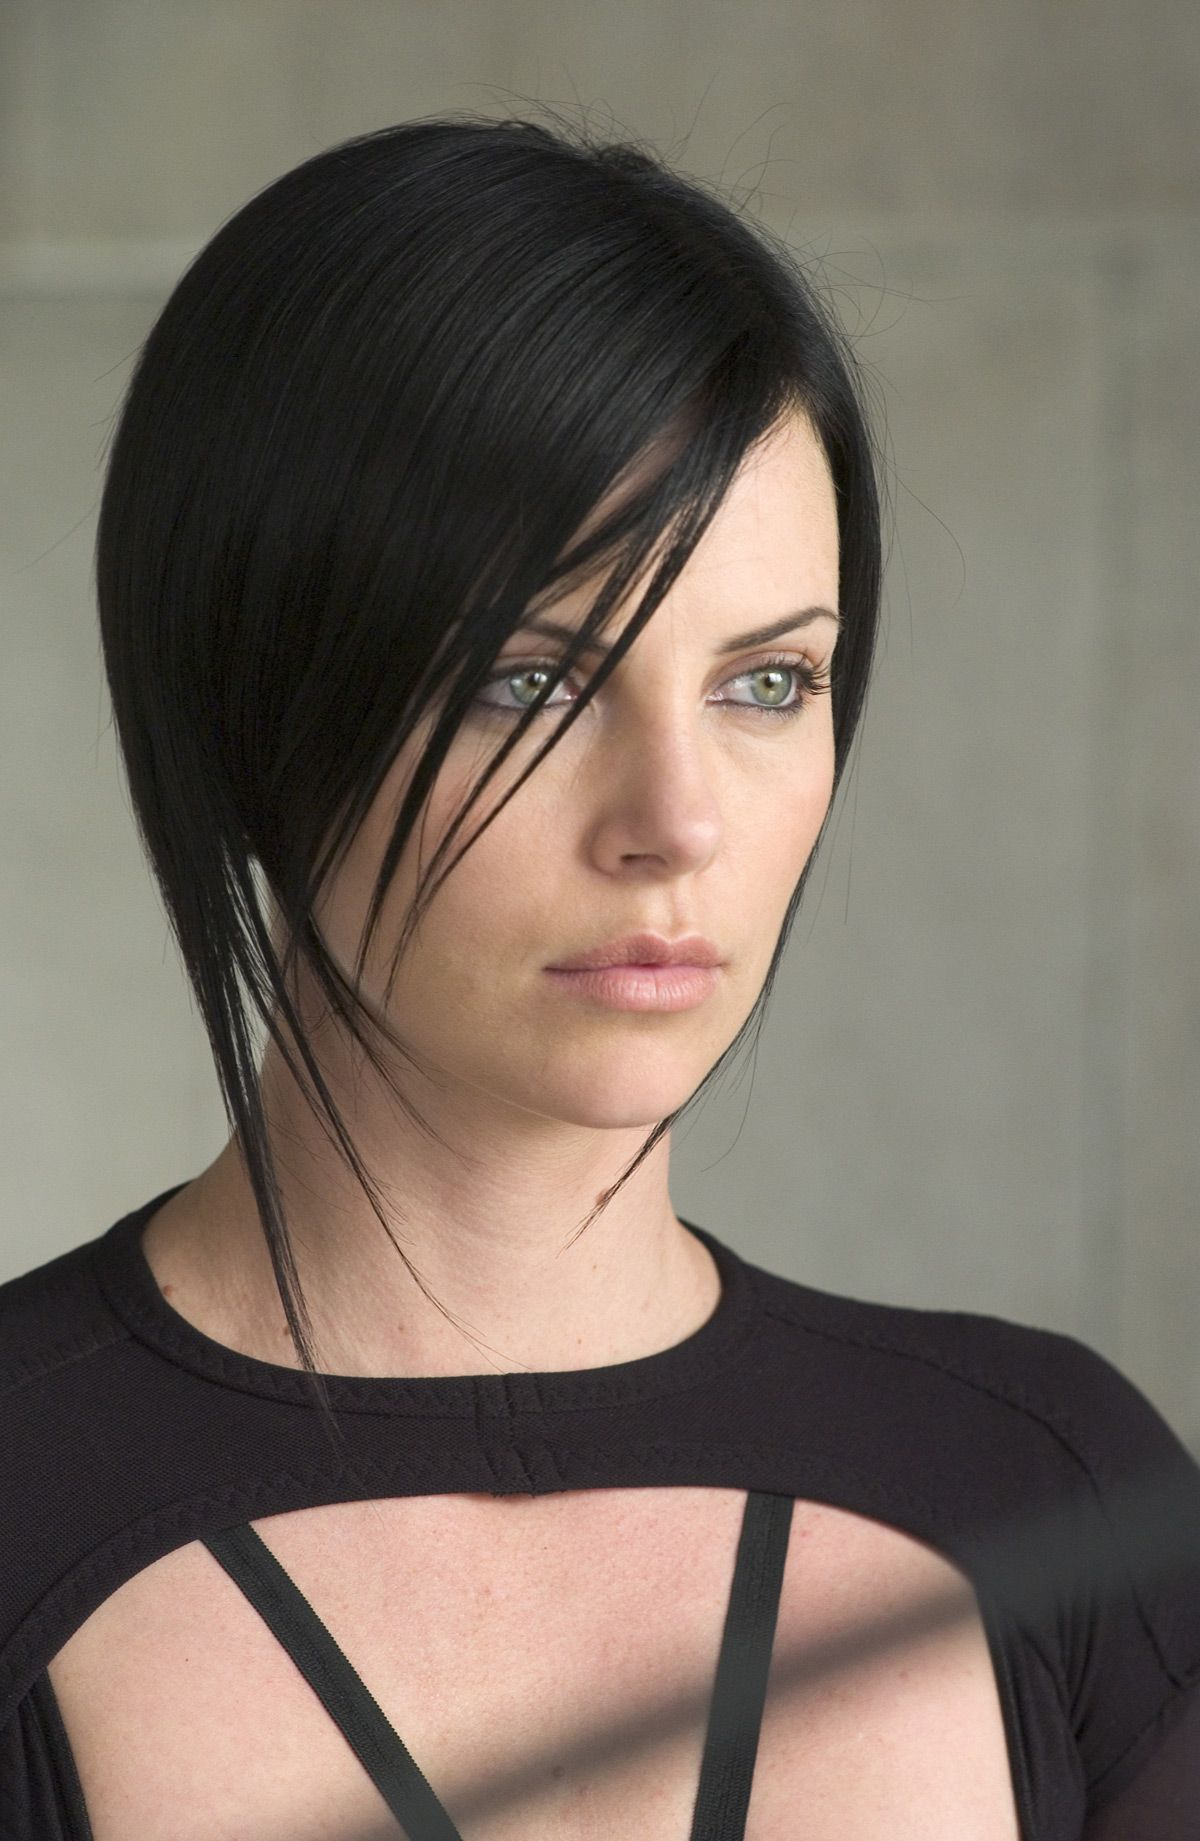 I Have Always Loved This Hairstyle That Charlize Theron Had In Aeon